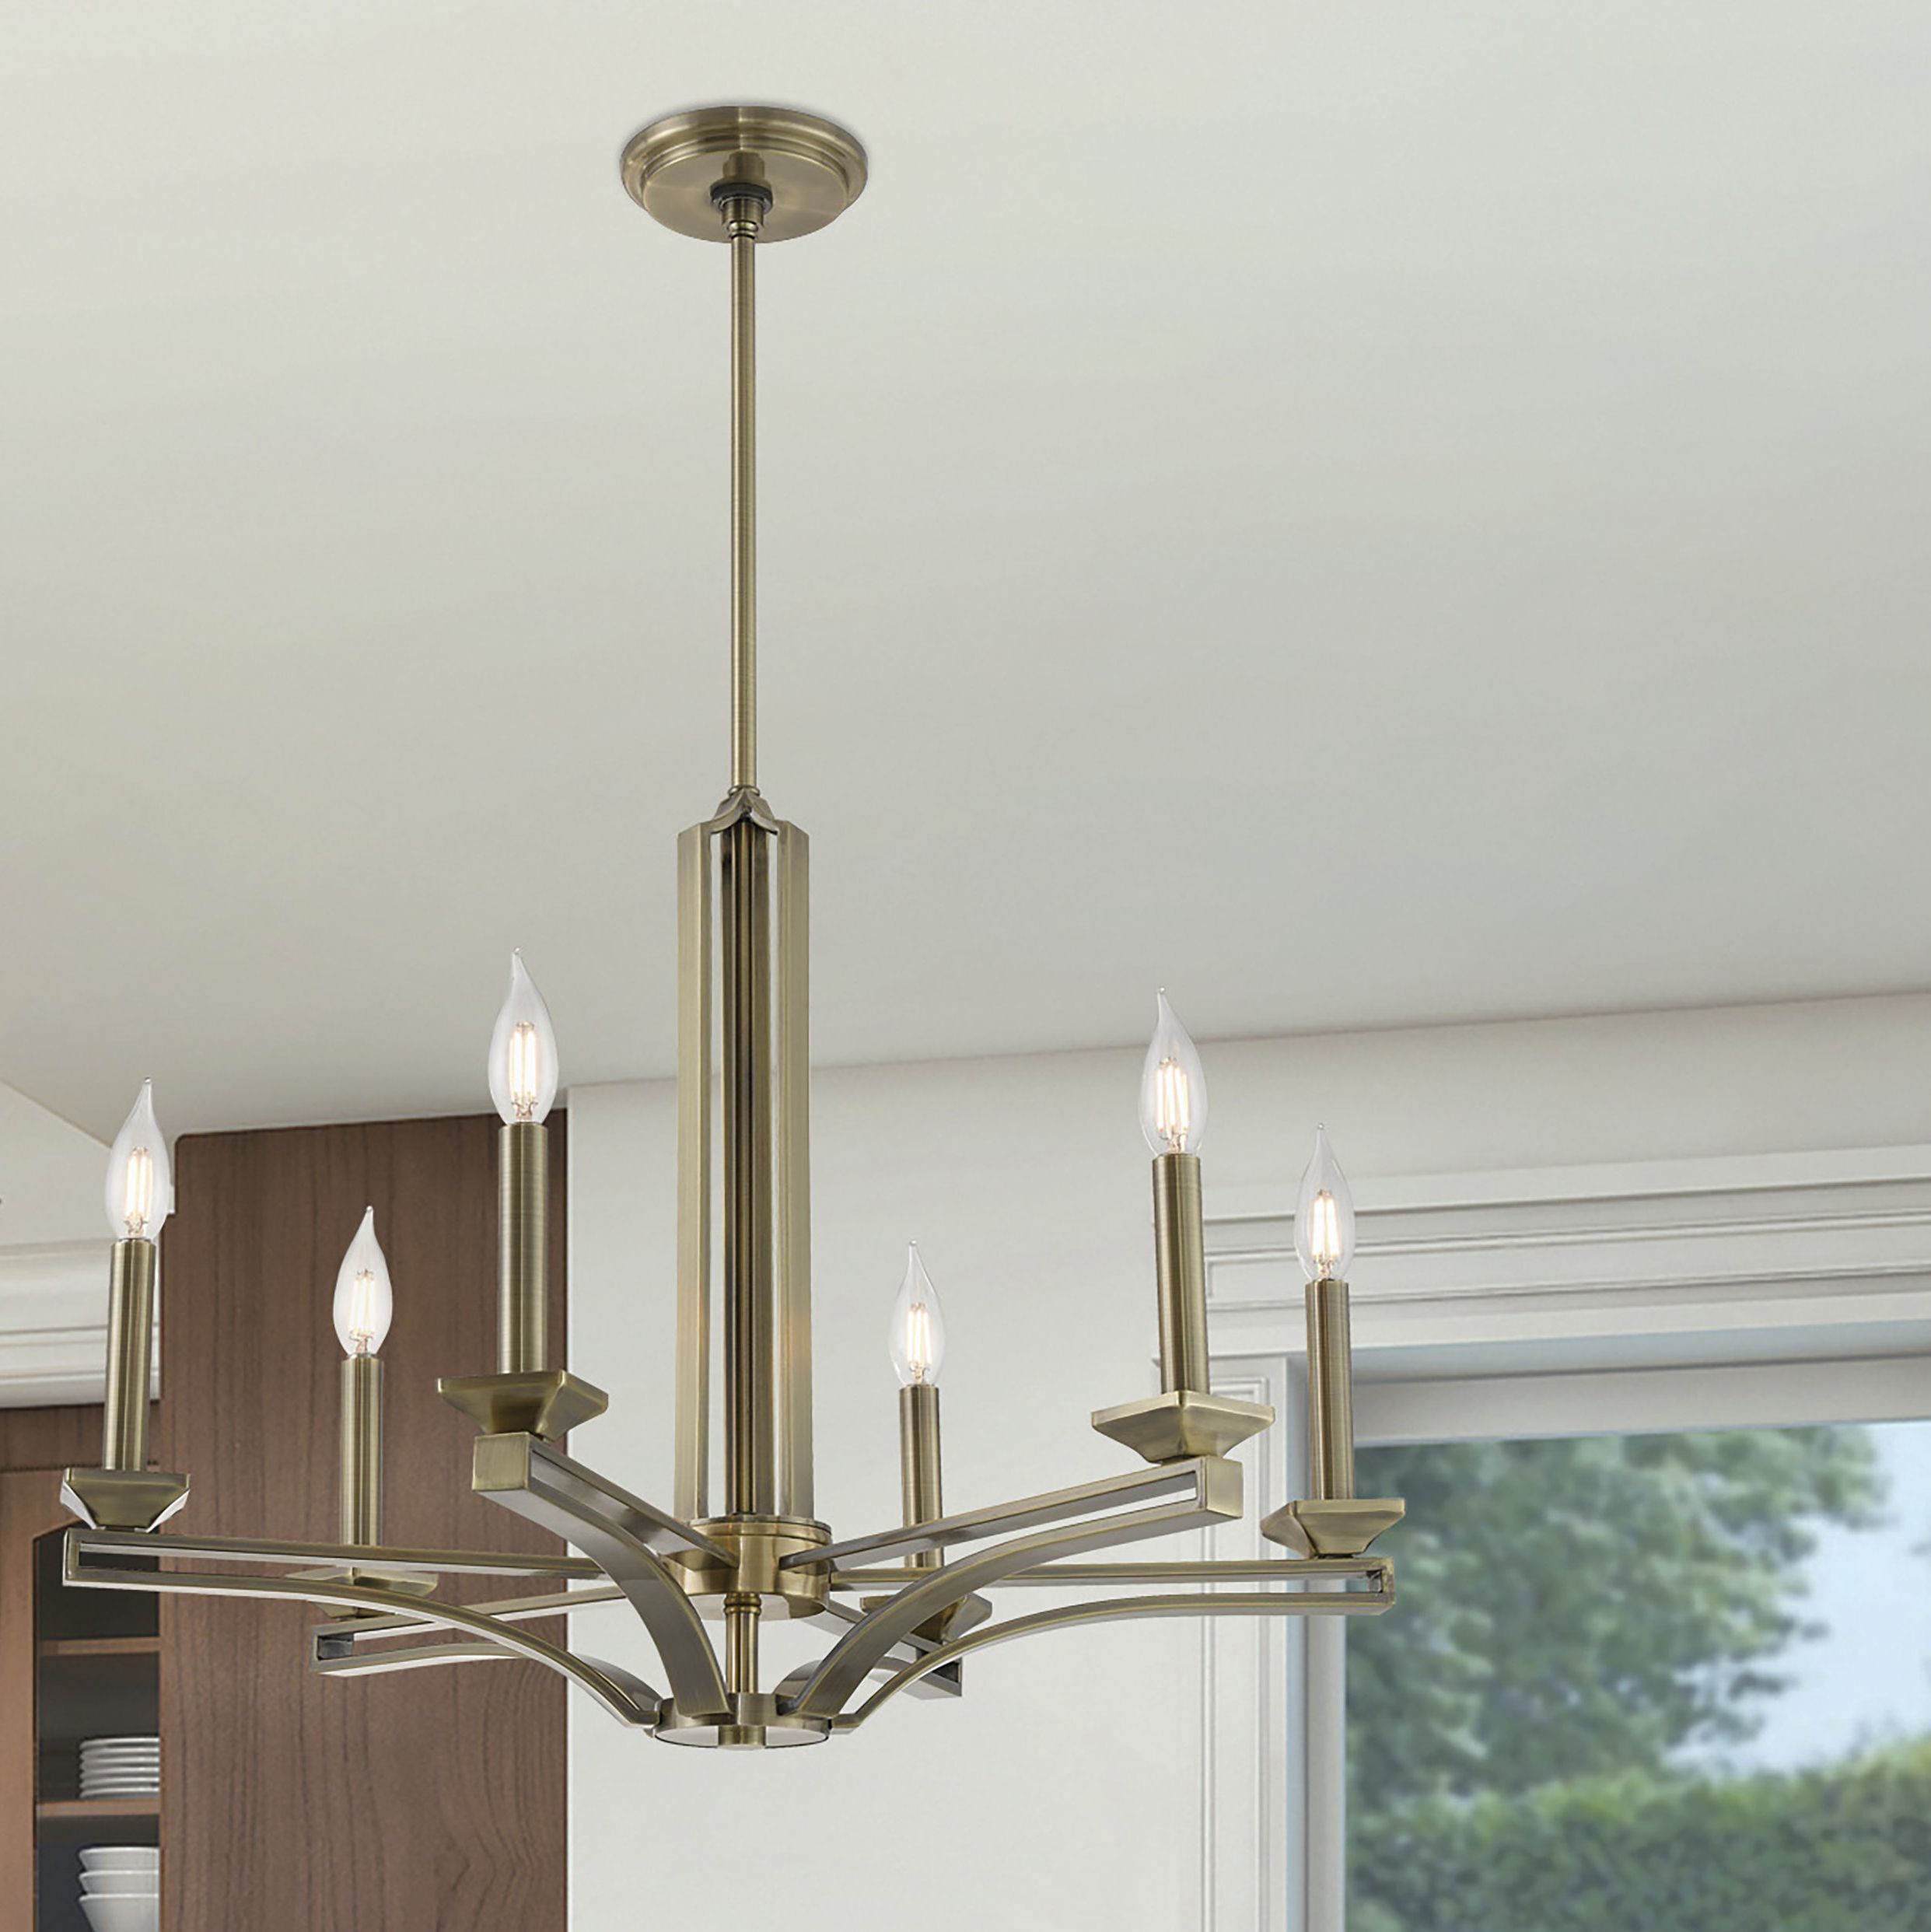 Dedham 6 Light Candle Style Chandelier Throughout Well Known Hesse 5 Light Candle Style Chandeliers (Gallery 15 of 25)